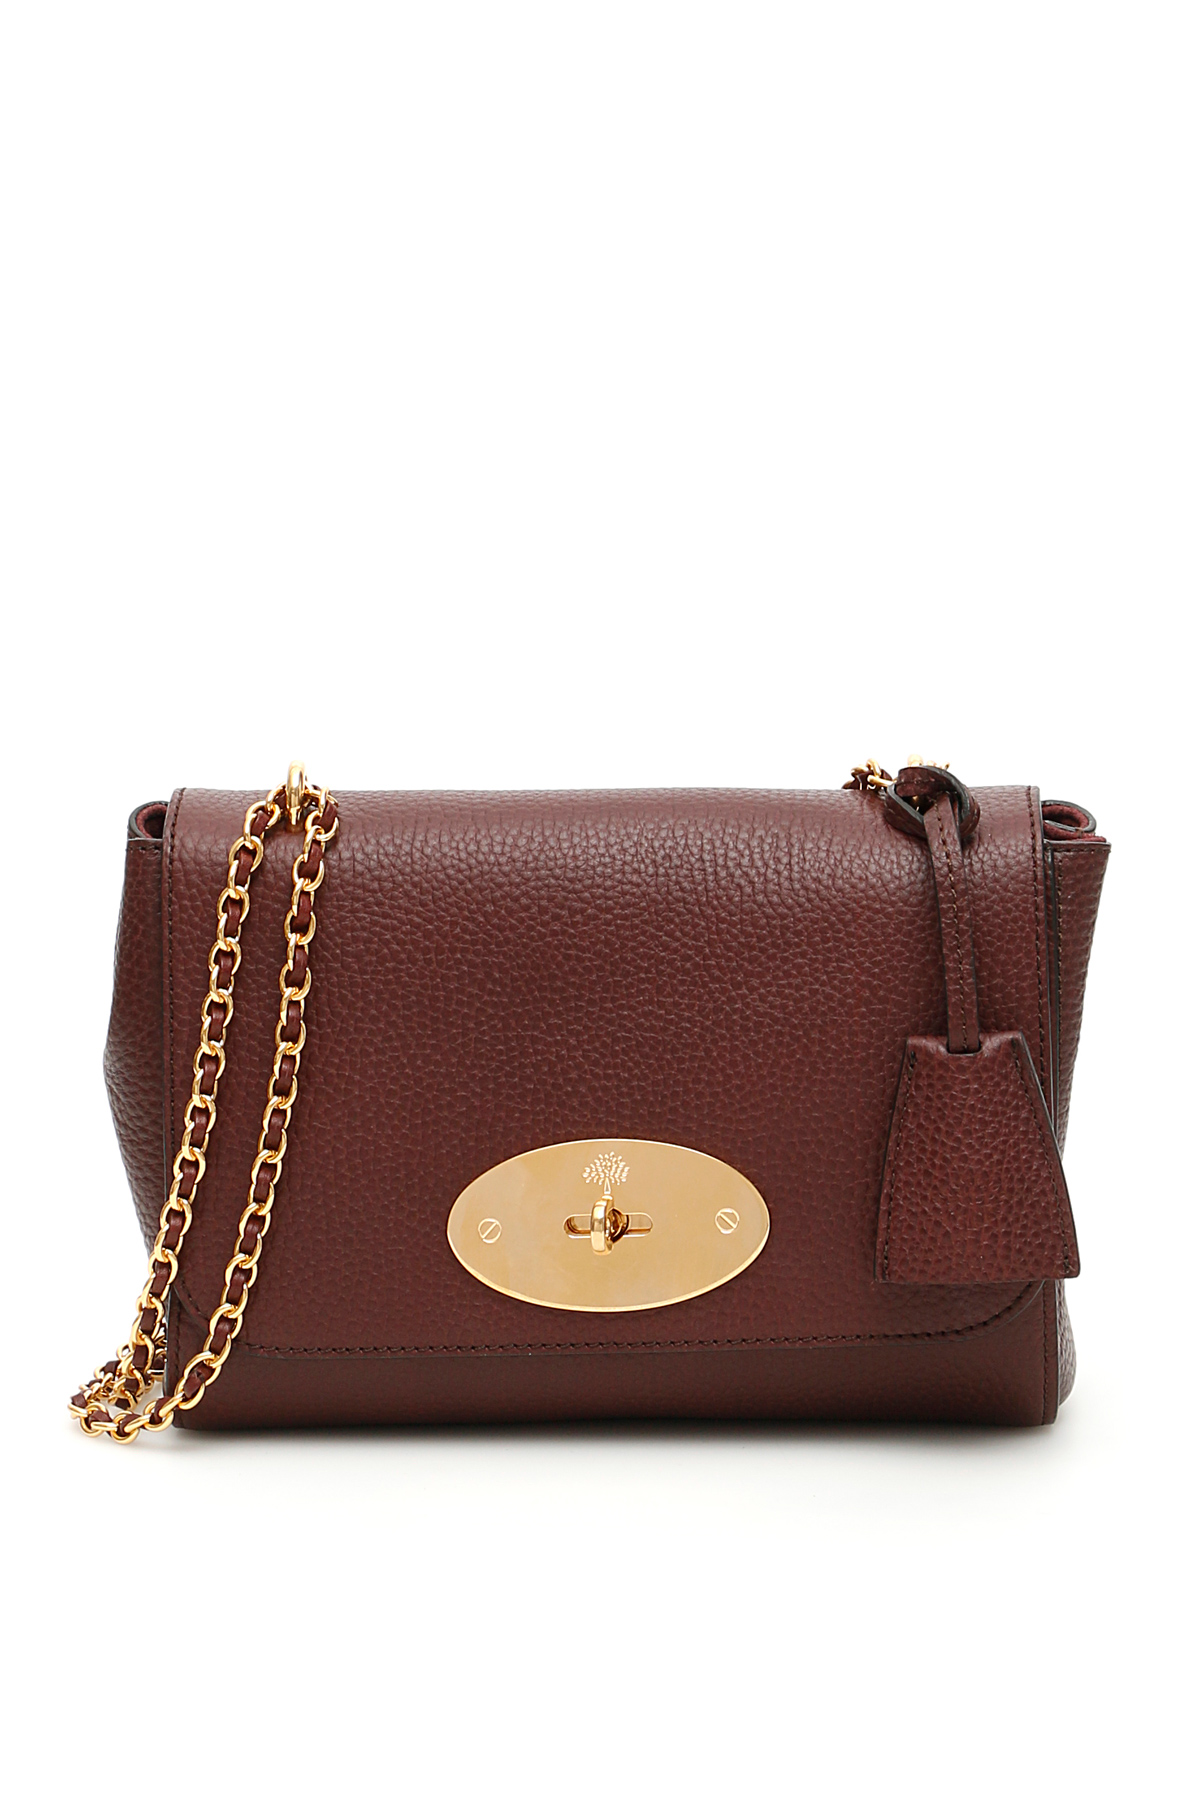 Mulberry Leathers SMALL LILY BAG